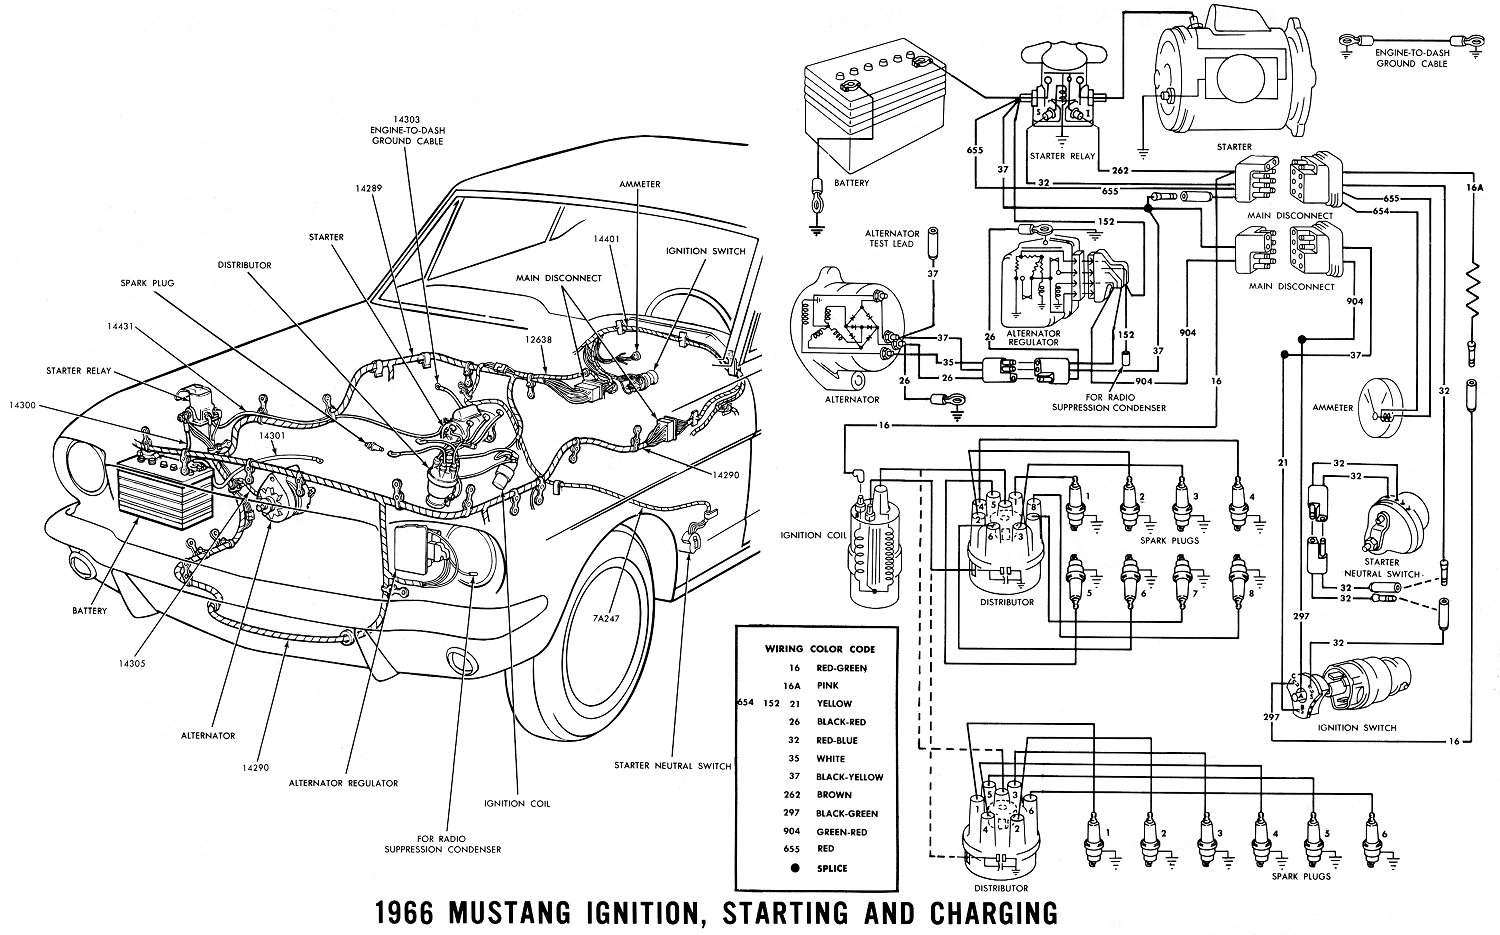 1990 Ford Ranger Fuse Box Diagram Wiring Library Mustang 1966 Diagrams Average Joe Restoration